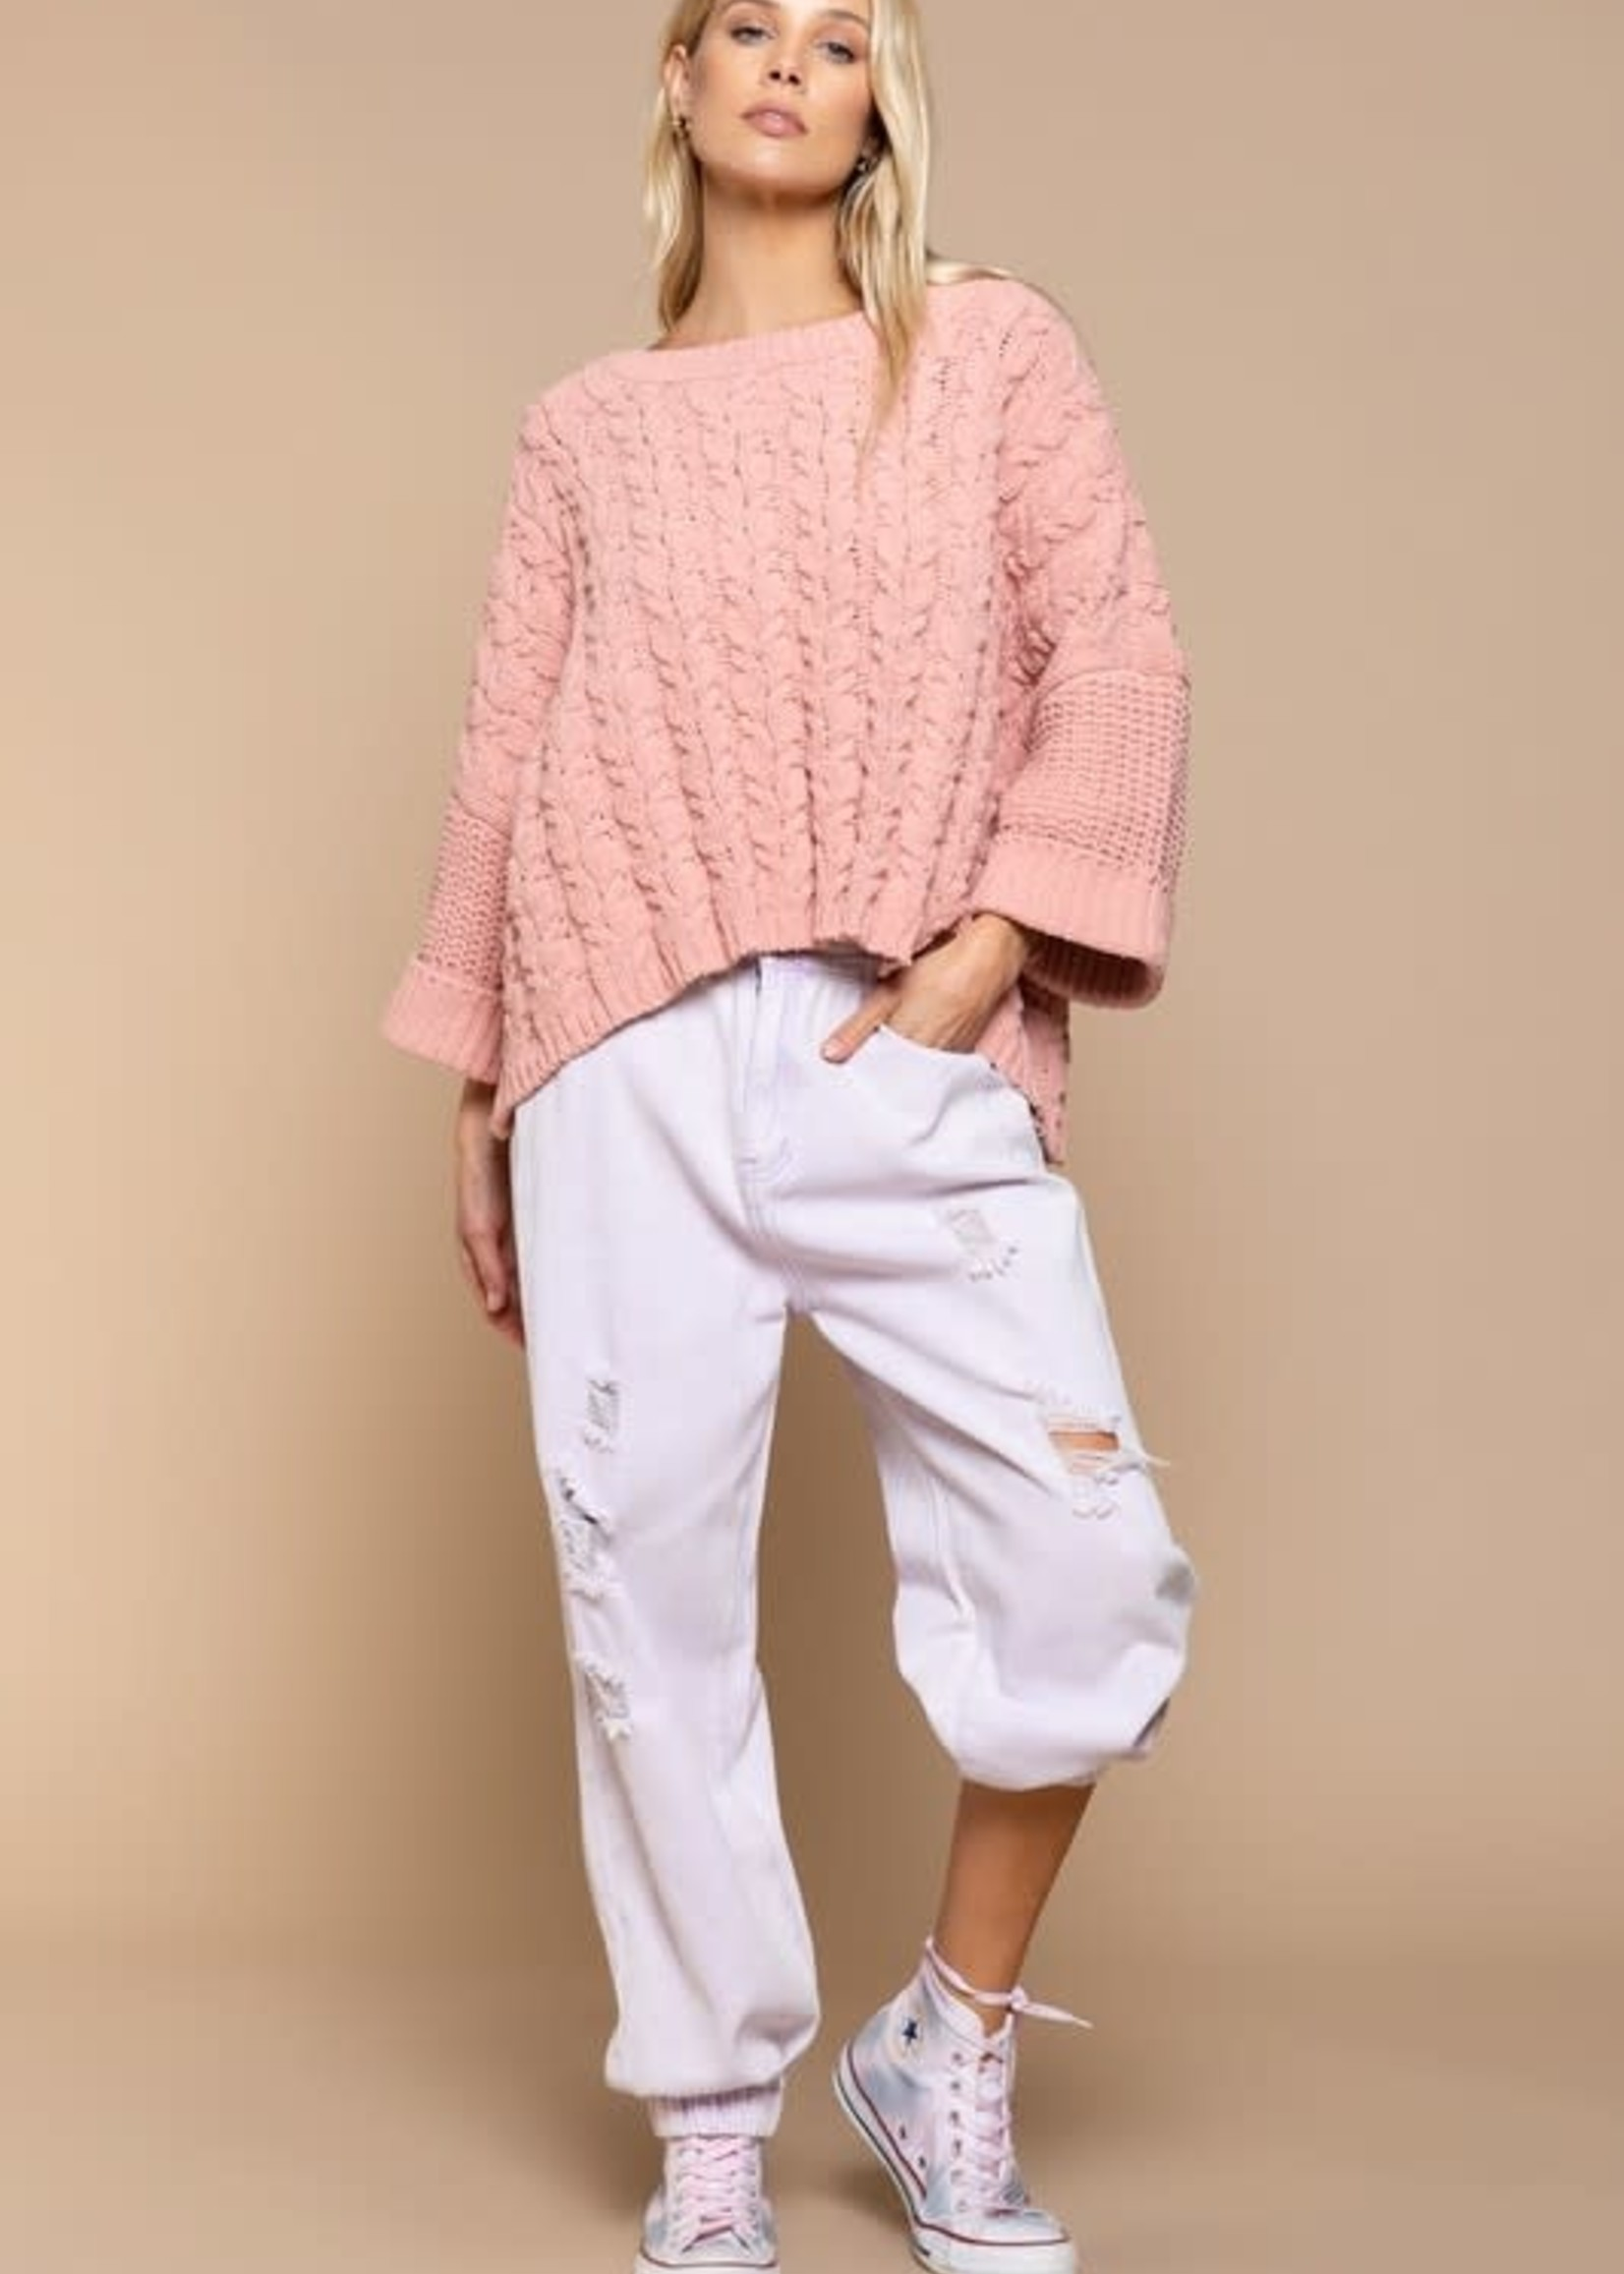 Blush Pink Cable Knit Pullover Sweater